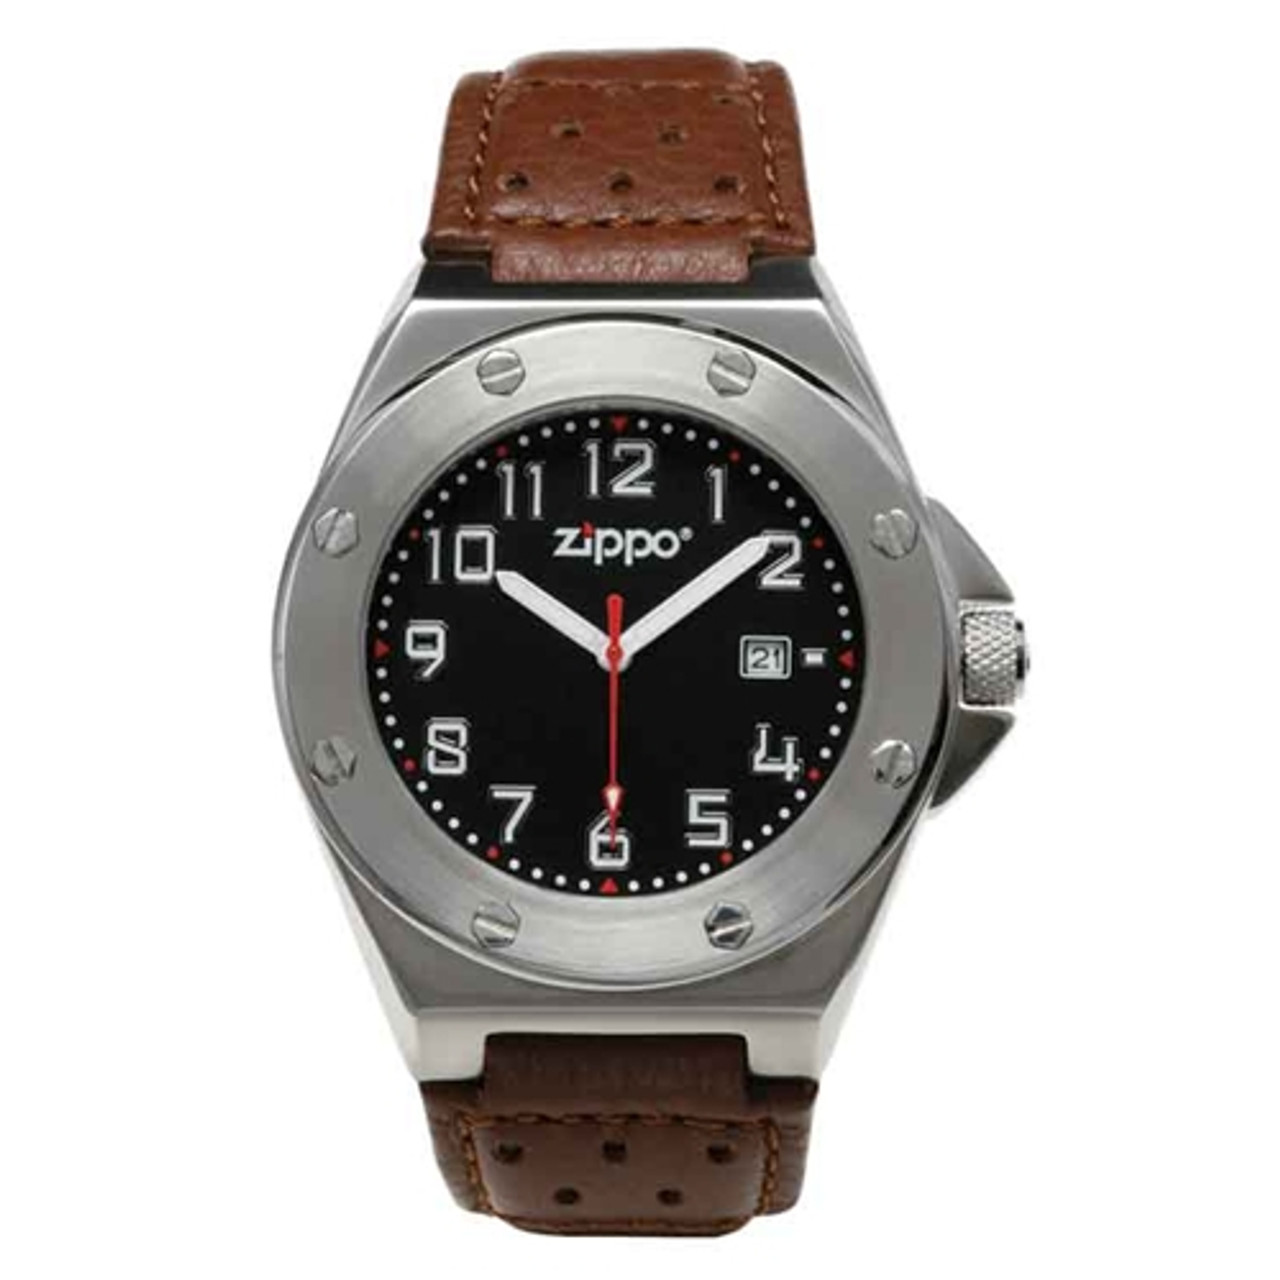 Zippo Z45009 Sport Watch-Black Face-Brown Leather Band 45009